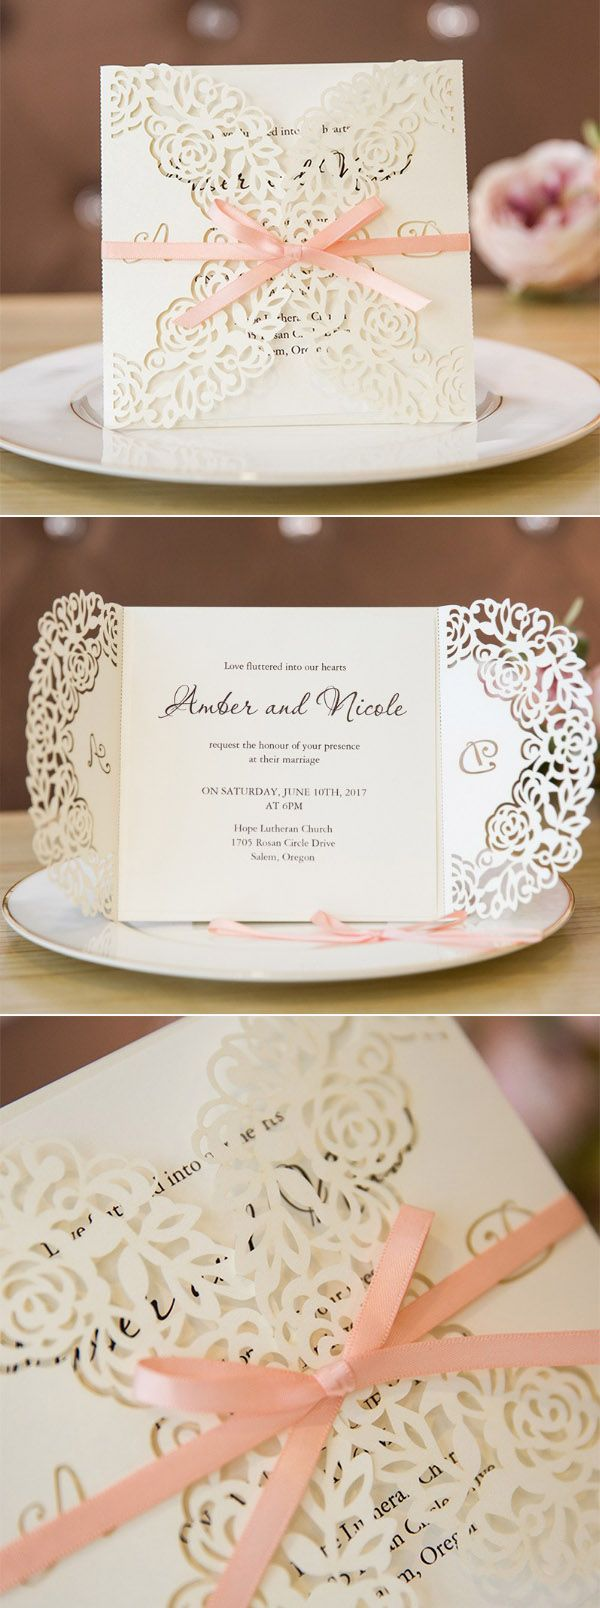 custom laser cut monogram wedding invitation cards